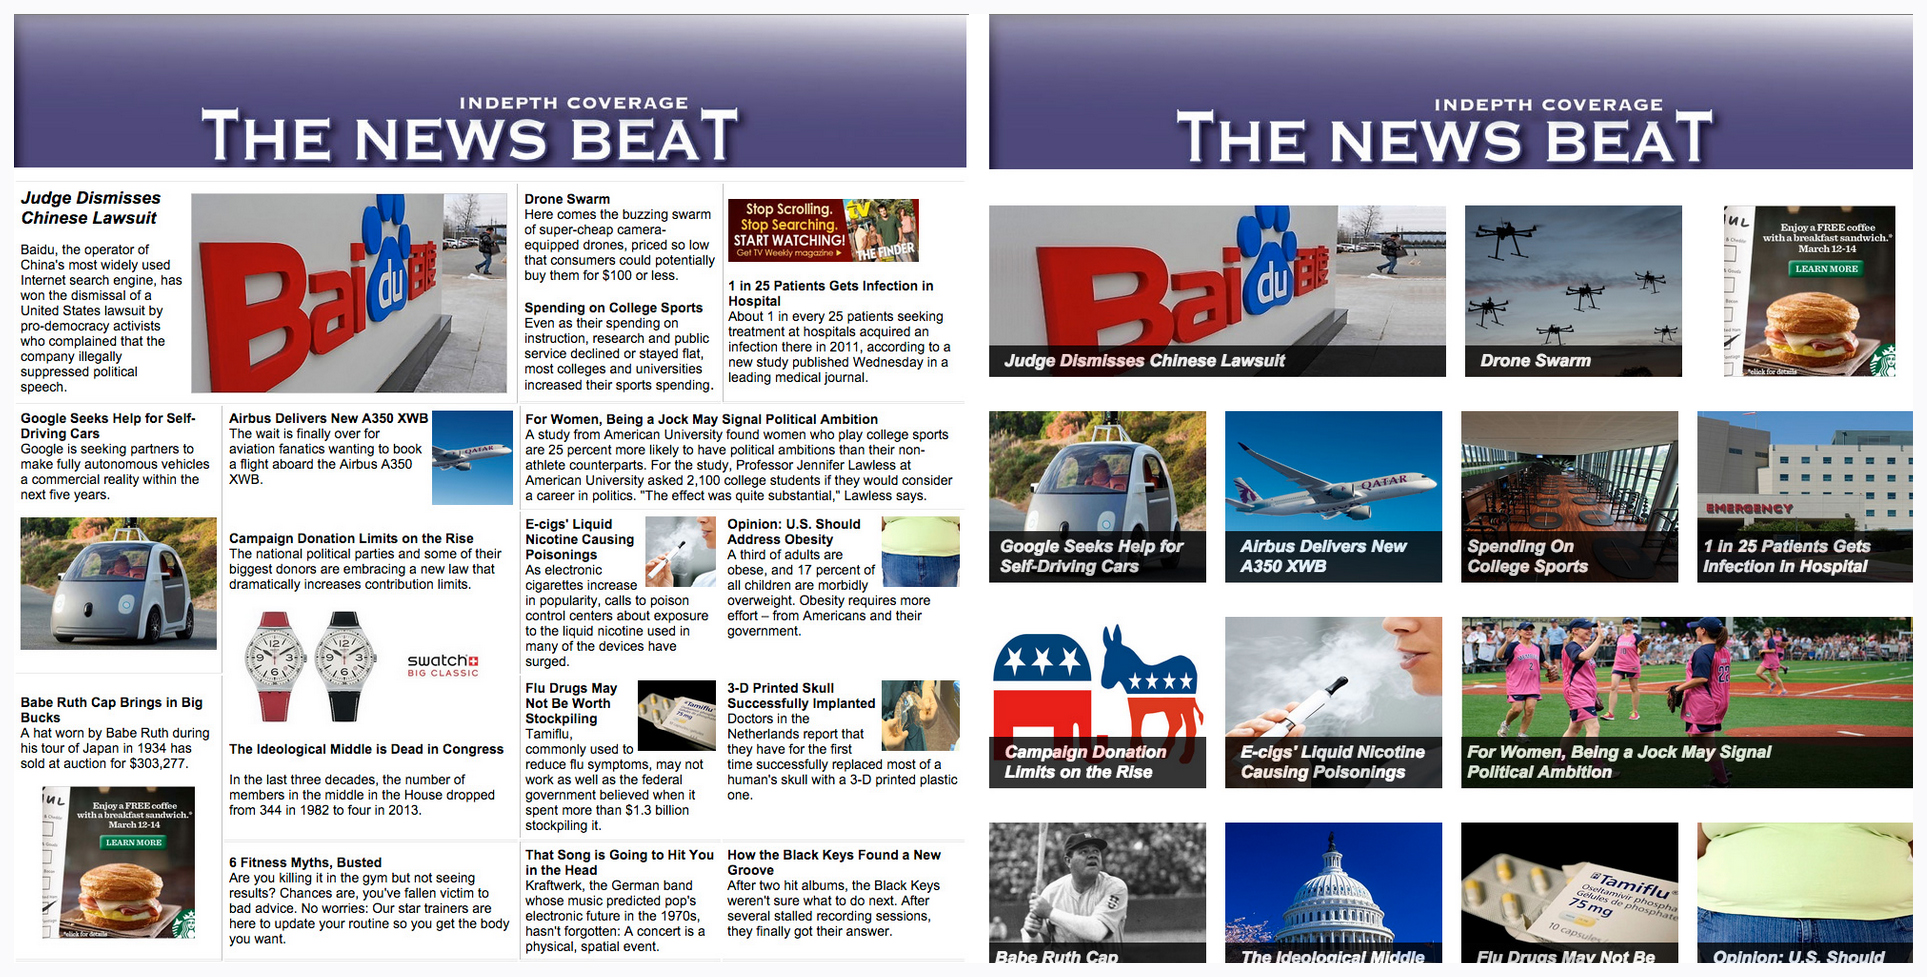 The News Beat